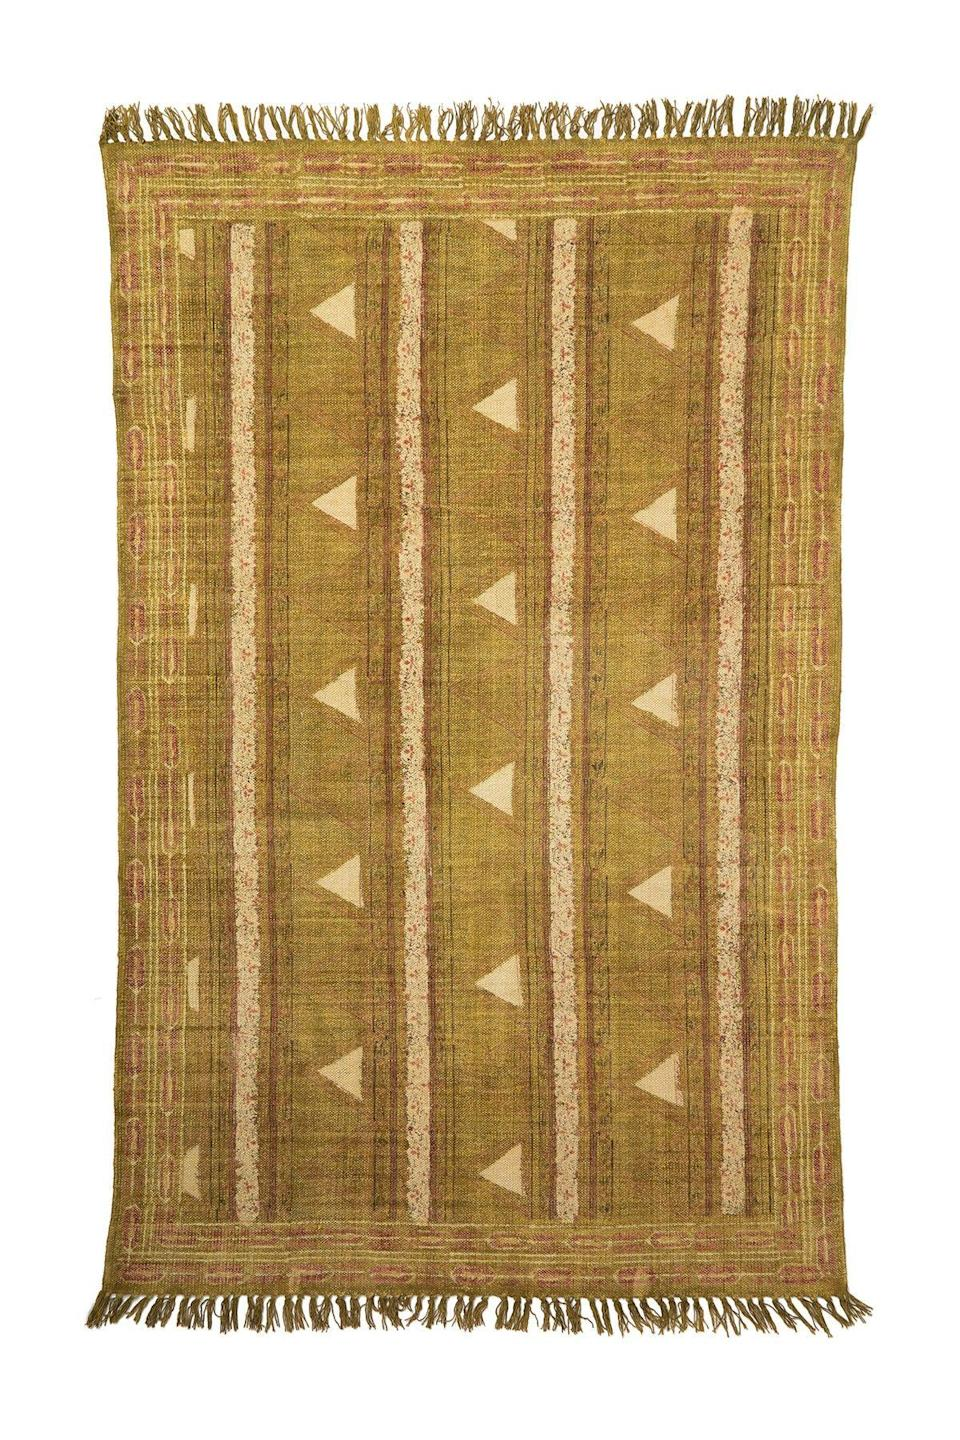 "<p>This dhurrie-style rug is ready to add a splash of vintage, ""had it forever,"" charm to your space.</p><br><br><strong>INDABA</strong> Montana Rug (4'x6'), $119.97, available at <a href=""https://www.nordstromrack.com/shop/product/2673768/indaba-montana-rug-4-x-6"" rel=""nofollow noopener"" target=""_blank"" data-ylk=""slk:Nordstrom Rack"" class=""link rapid-noclick-resp"">Nordstrom Rack</a>"